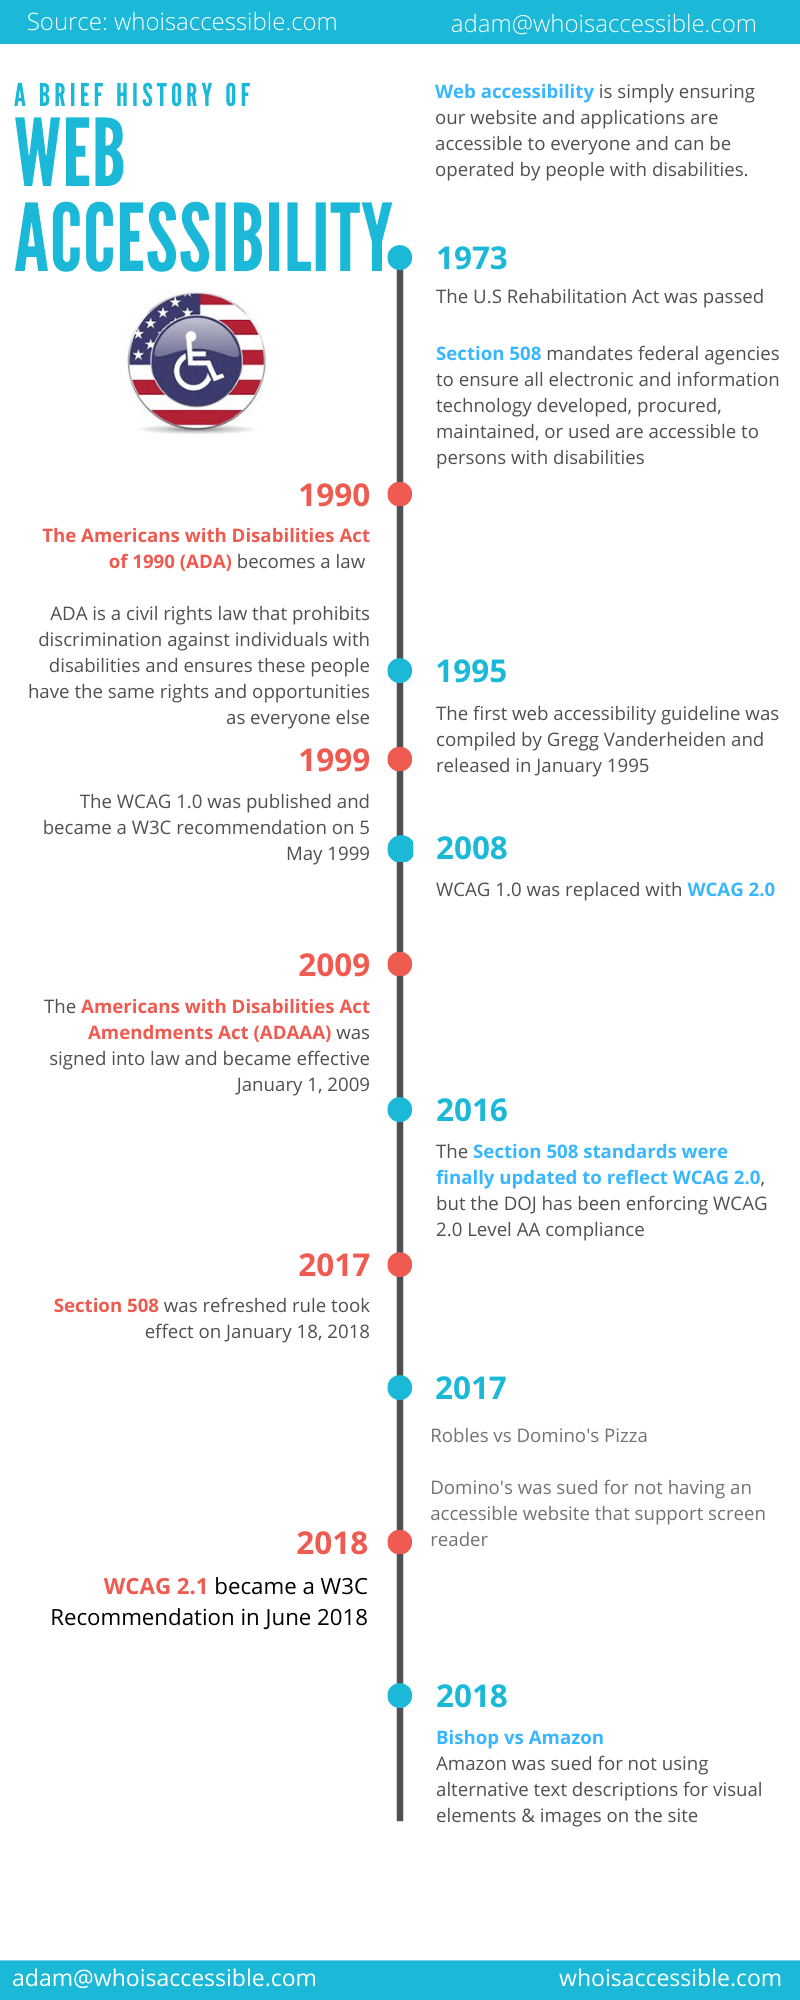 Web-Accessibility-History-Timeline